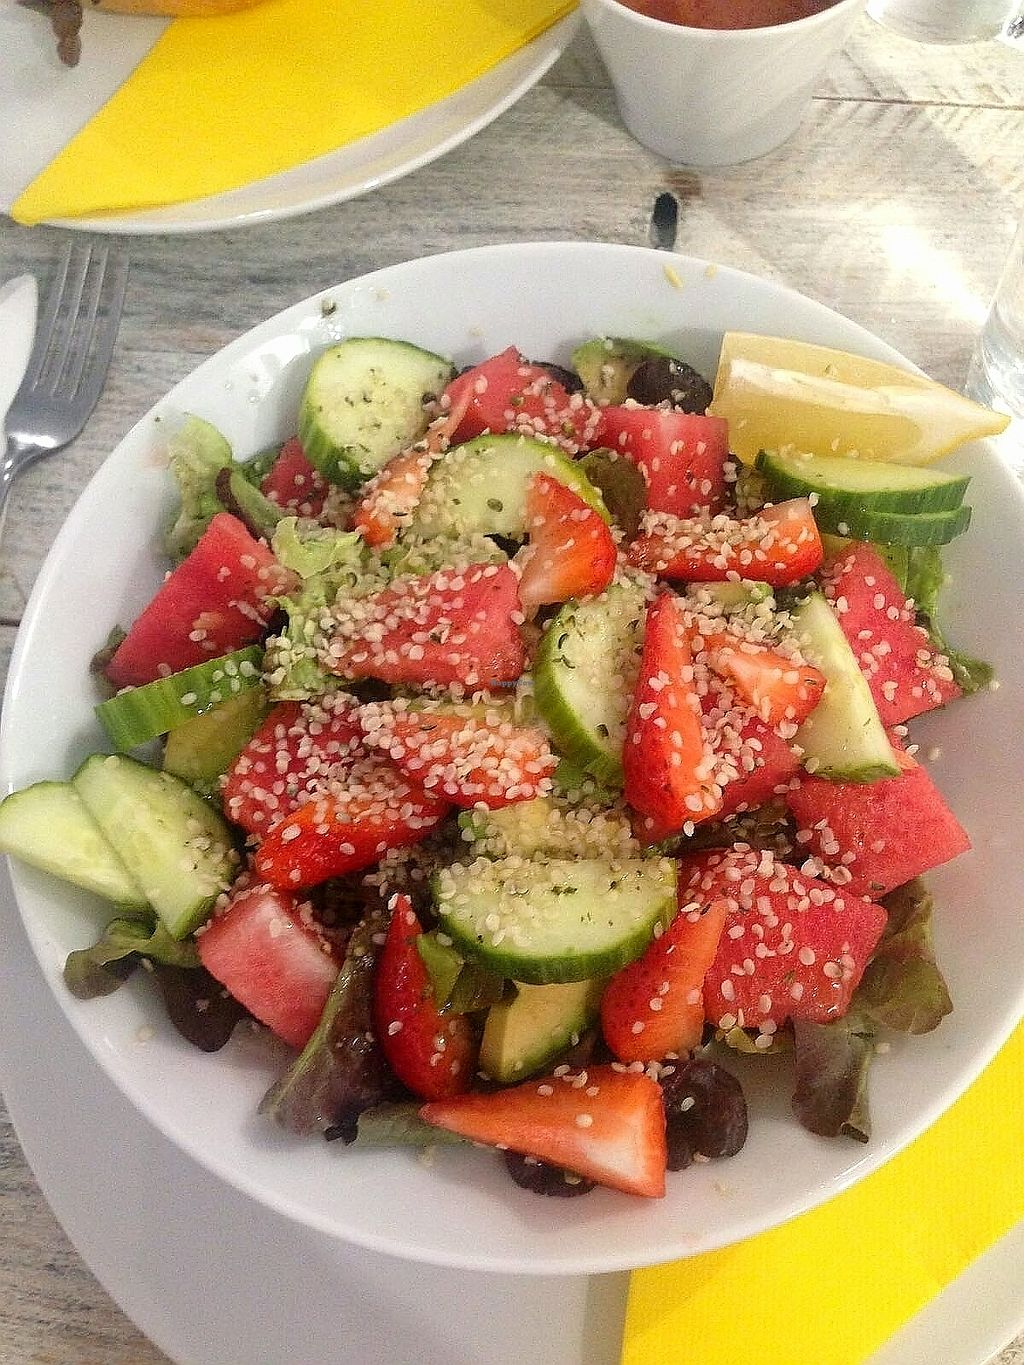 """Photo of Vegan Ibiza  by <a href=""""/members/profile/wyrd"""">wyrd</a> <br/>Fruit and vegetables salad <br/> August 24, 2017  - <a href='/contact/abuse/image/93478/296834'>Report</a>"""